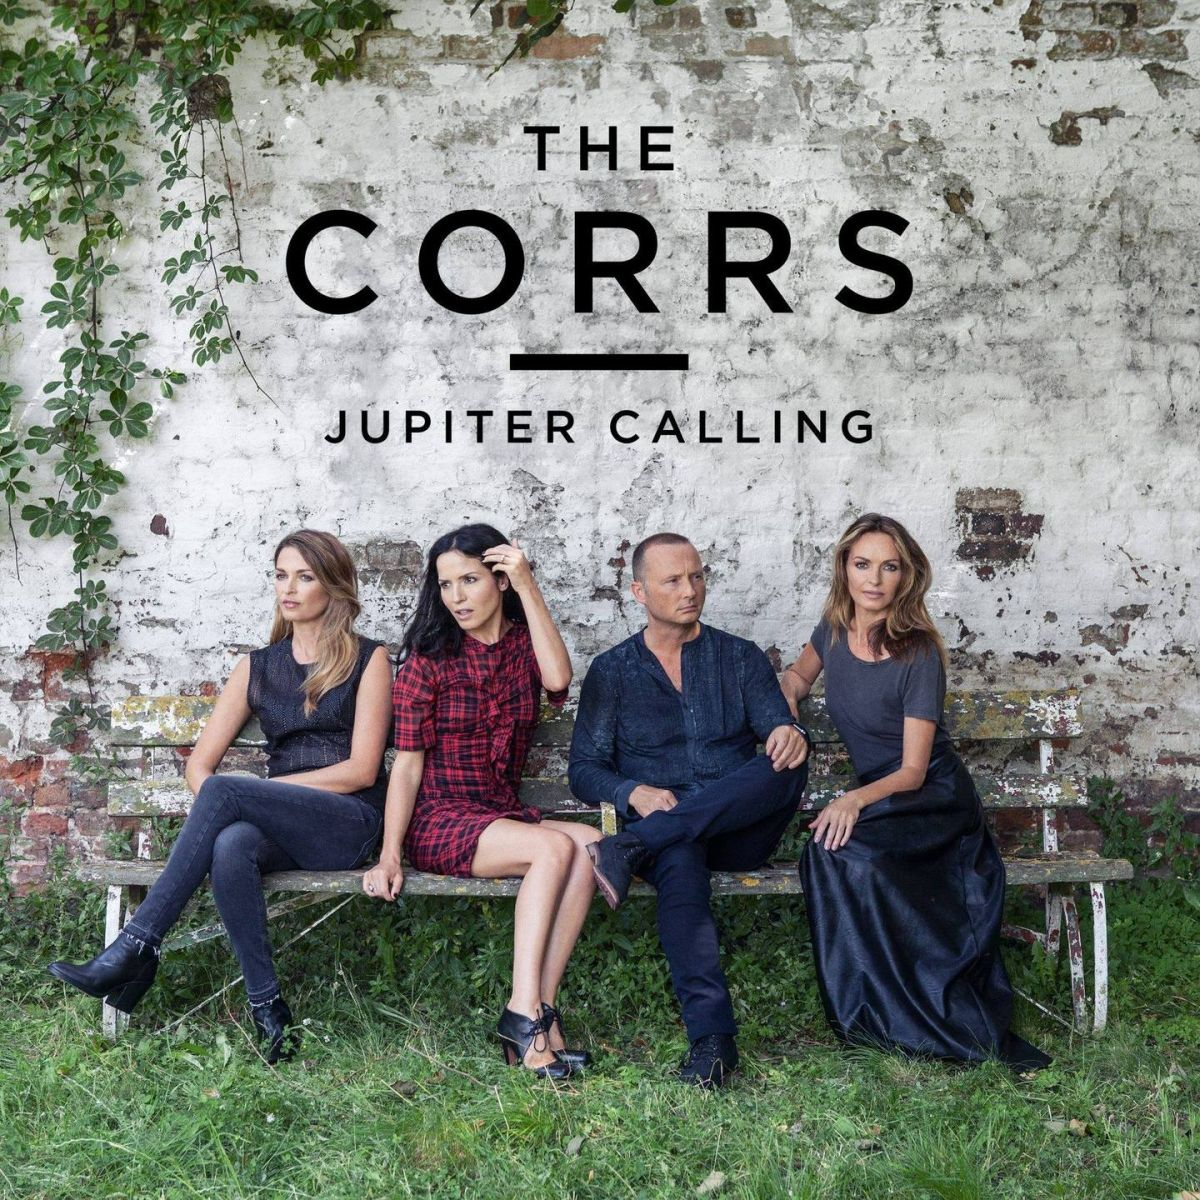 The Corrs: Jupiter Calling – bludgeons your ears into submission